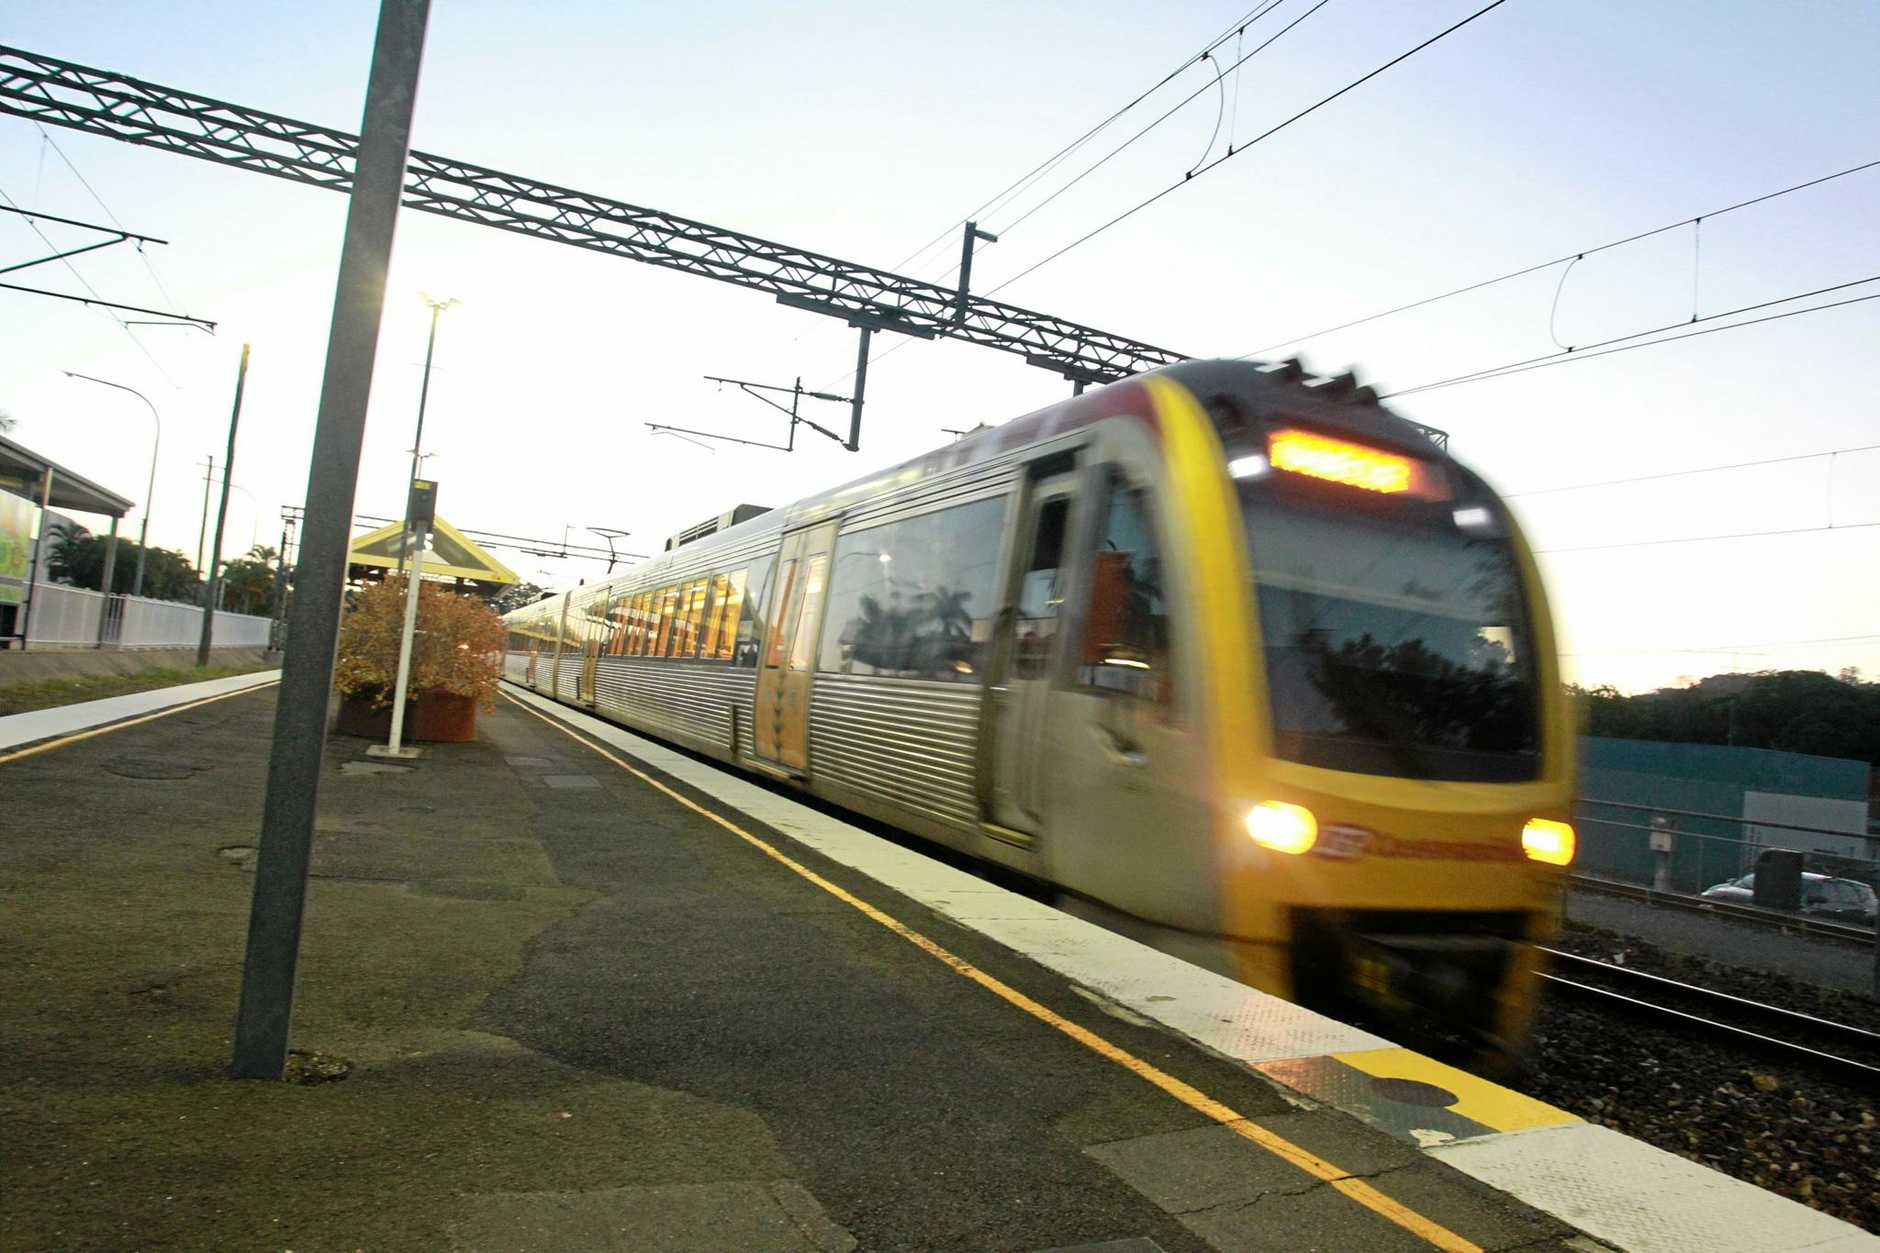 The afternoon train from Brisbane arrives at the Nambour Railway Station.